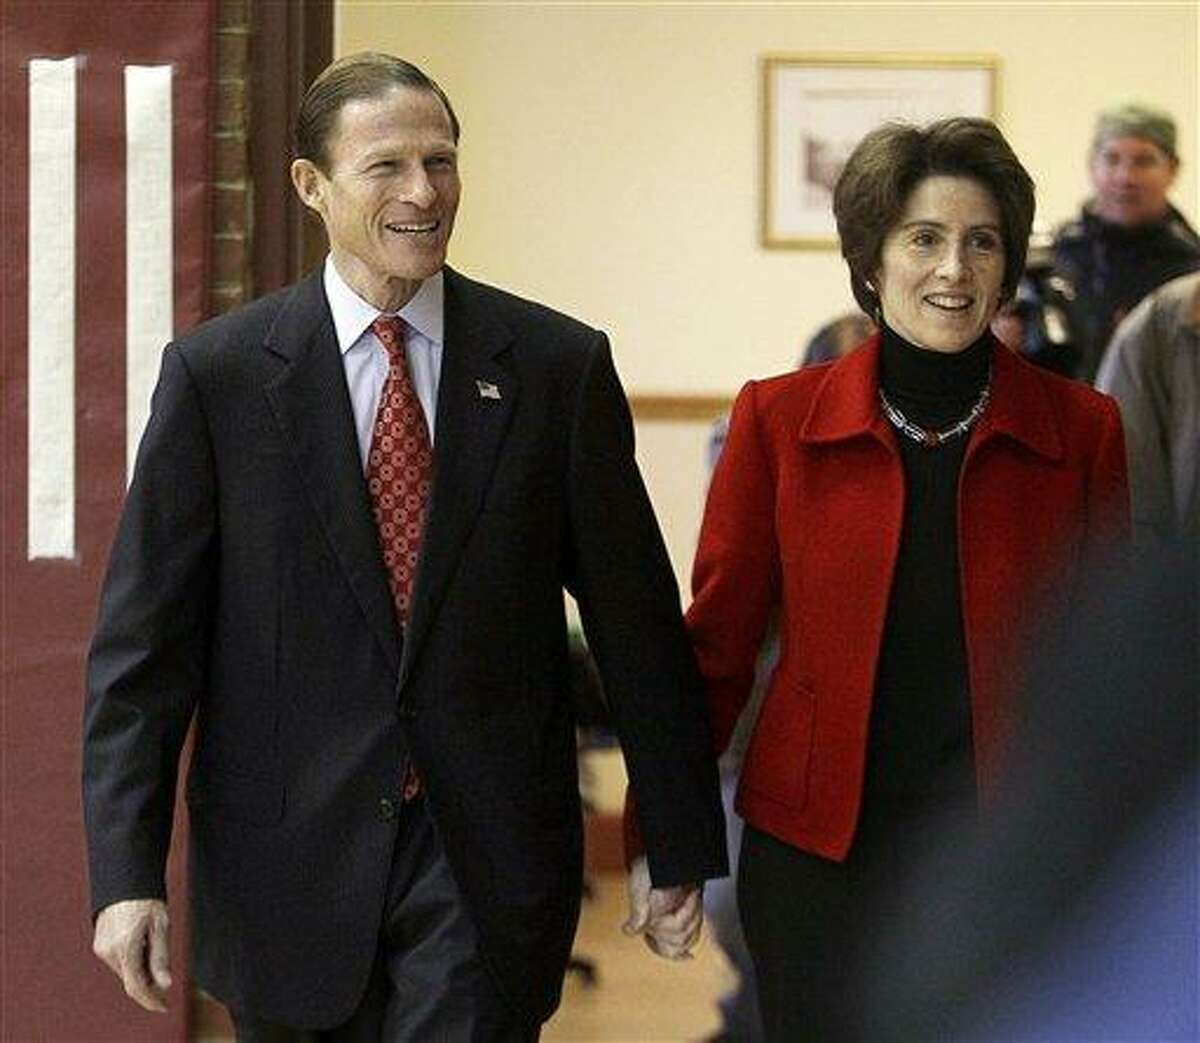 Connecticut Attorney General and Democratic candidate for the Senate Richard Blumenthal and his wife Cynthia walk hand-in-hand into the Bendheim Western Greenwich Civic Center before voting in Greenwich, Conn., Tuesday morning, Nov. 2, 2010. (AP Photo/Stephan Savoia)